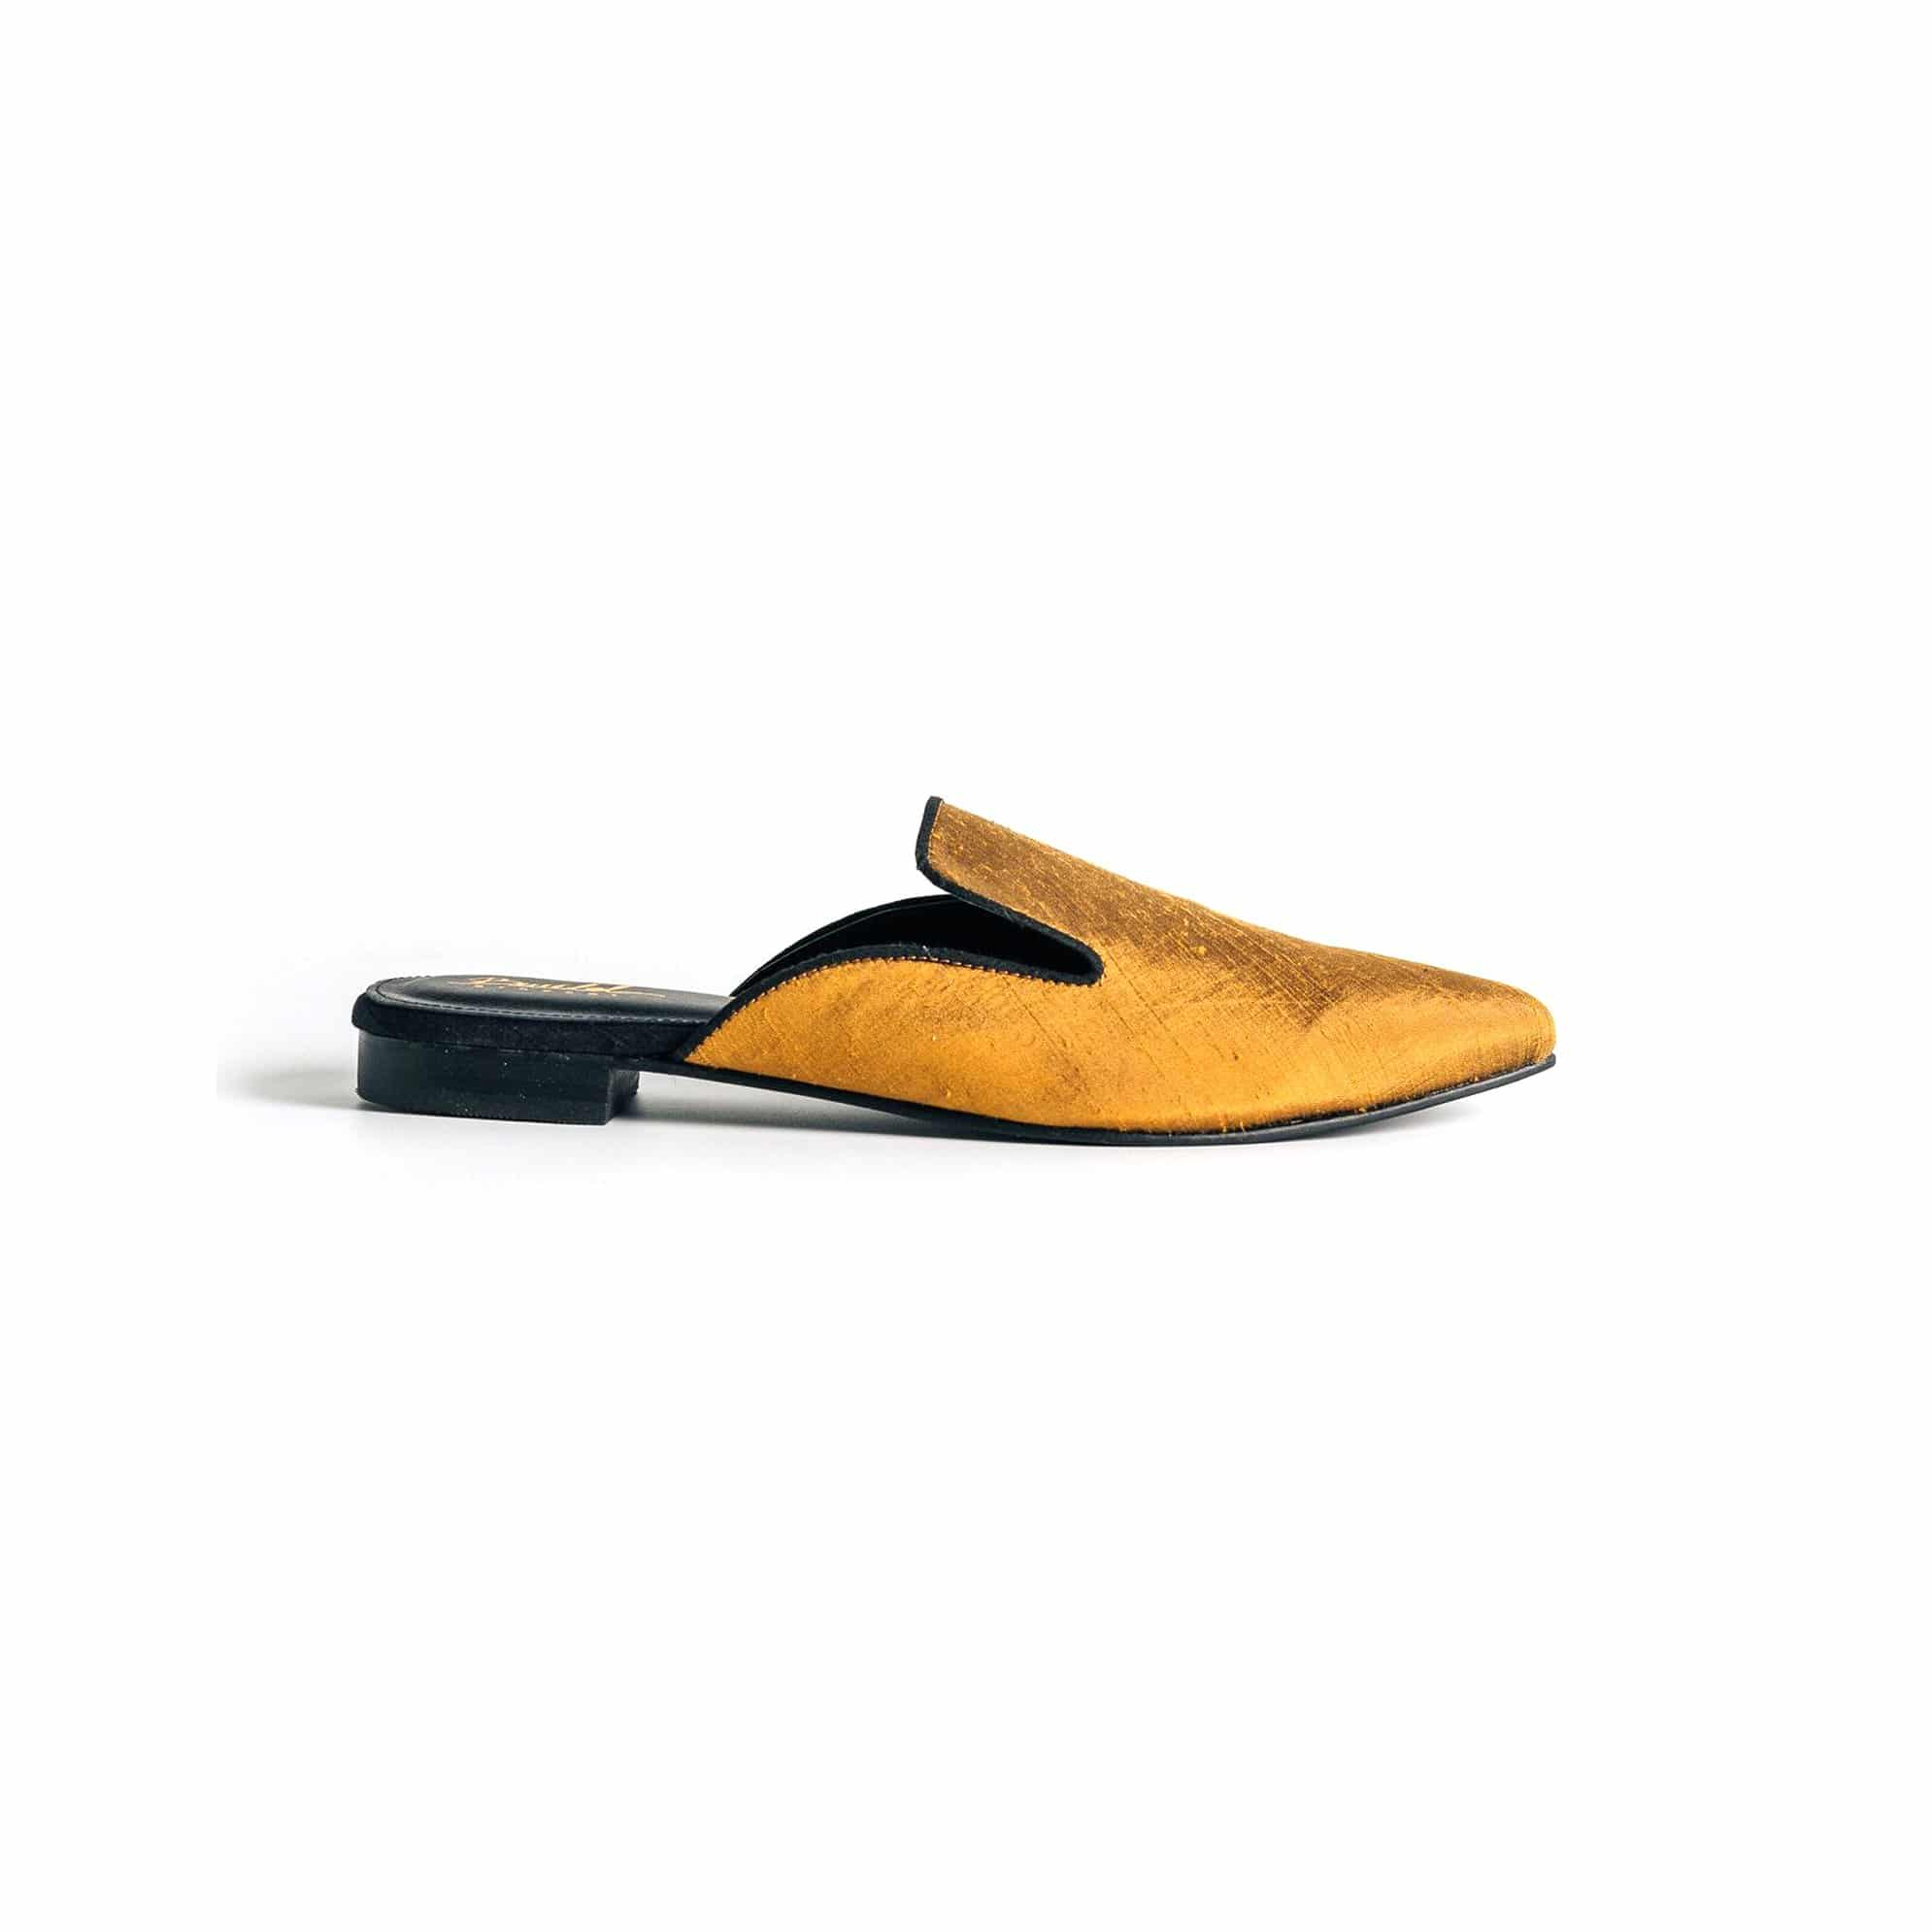 Wild in the city Mule Slippers - Amber/Black - BWILD byHeart